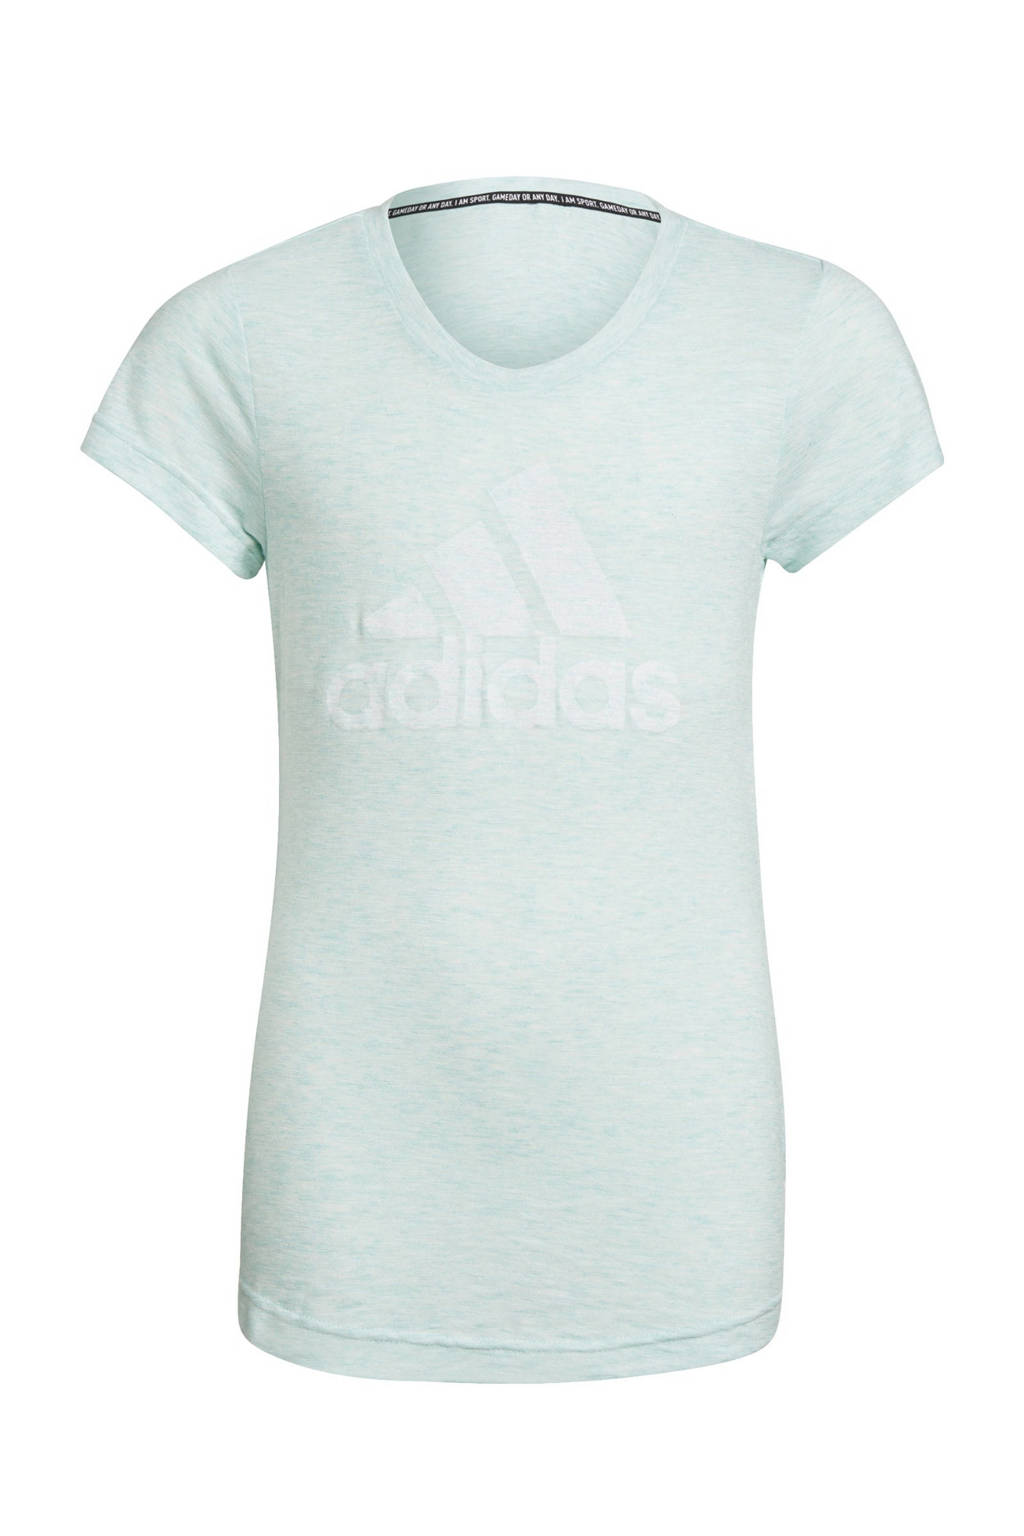 adidas Performance Girls In Power sport T-shirt mintgroen, Mintgroen